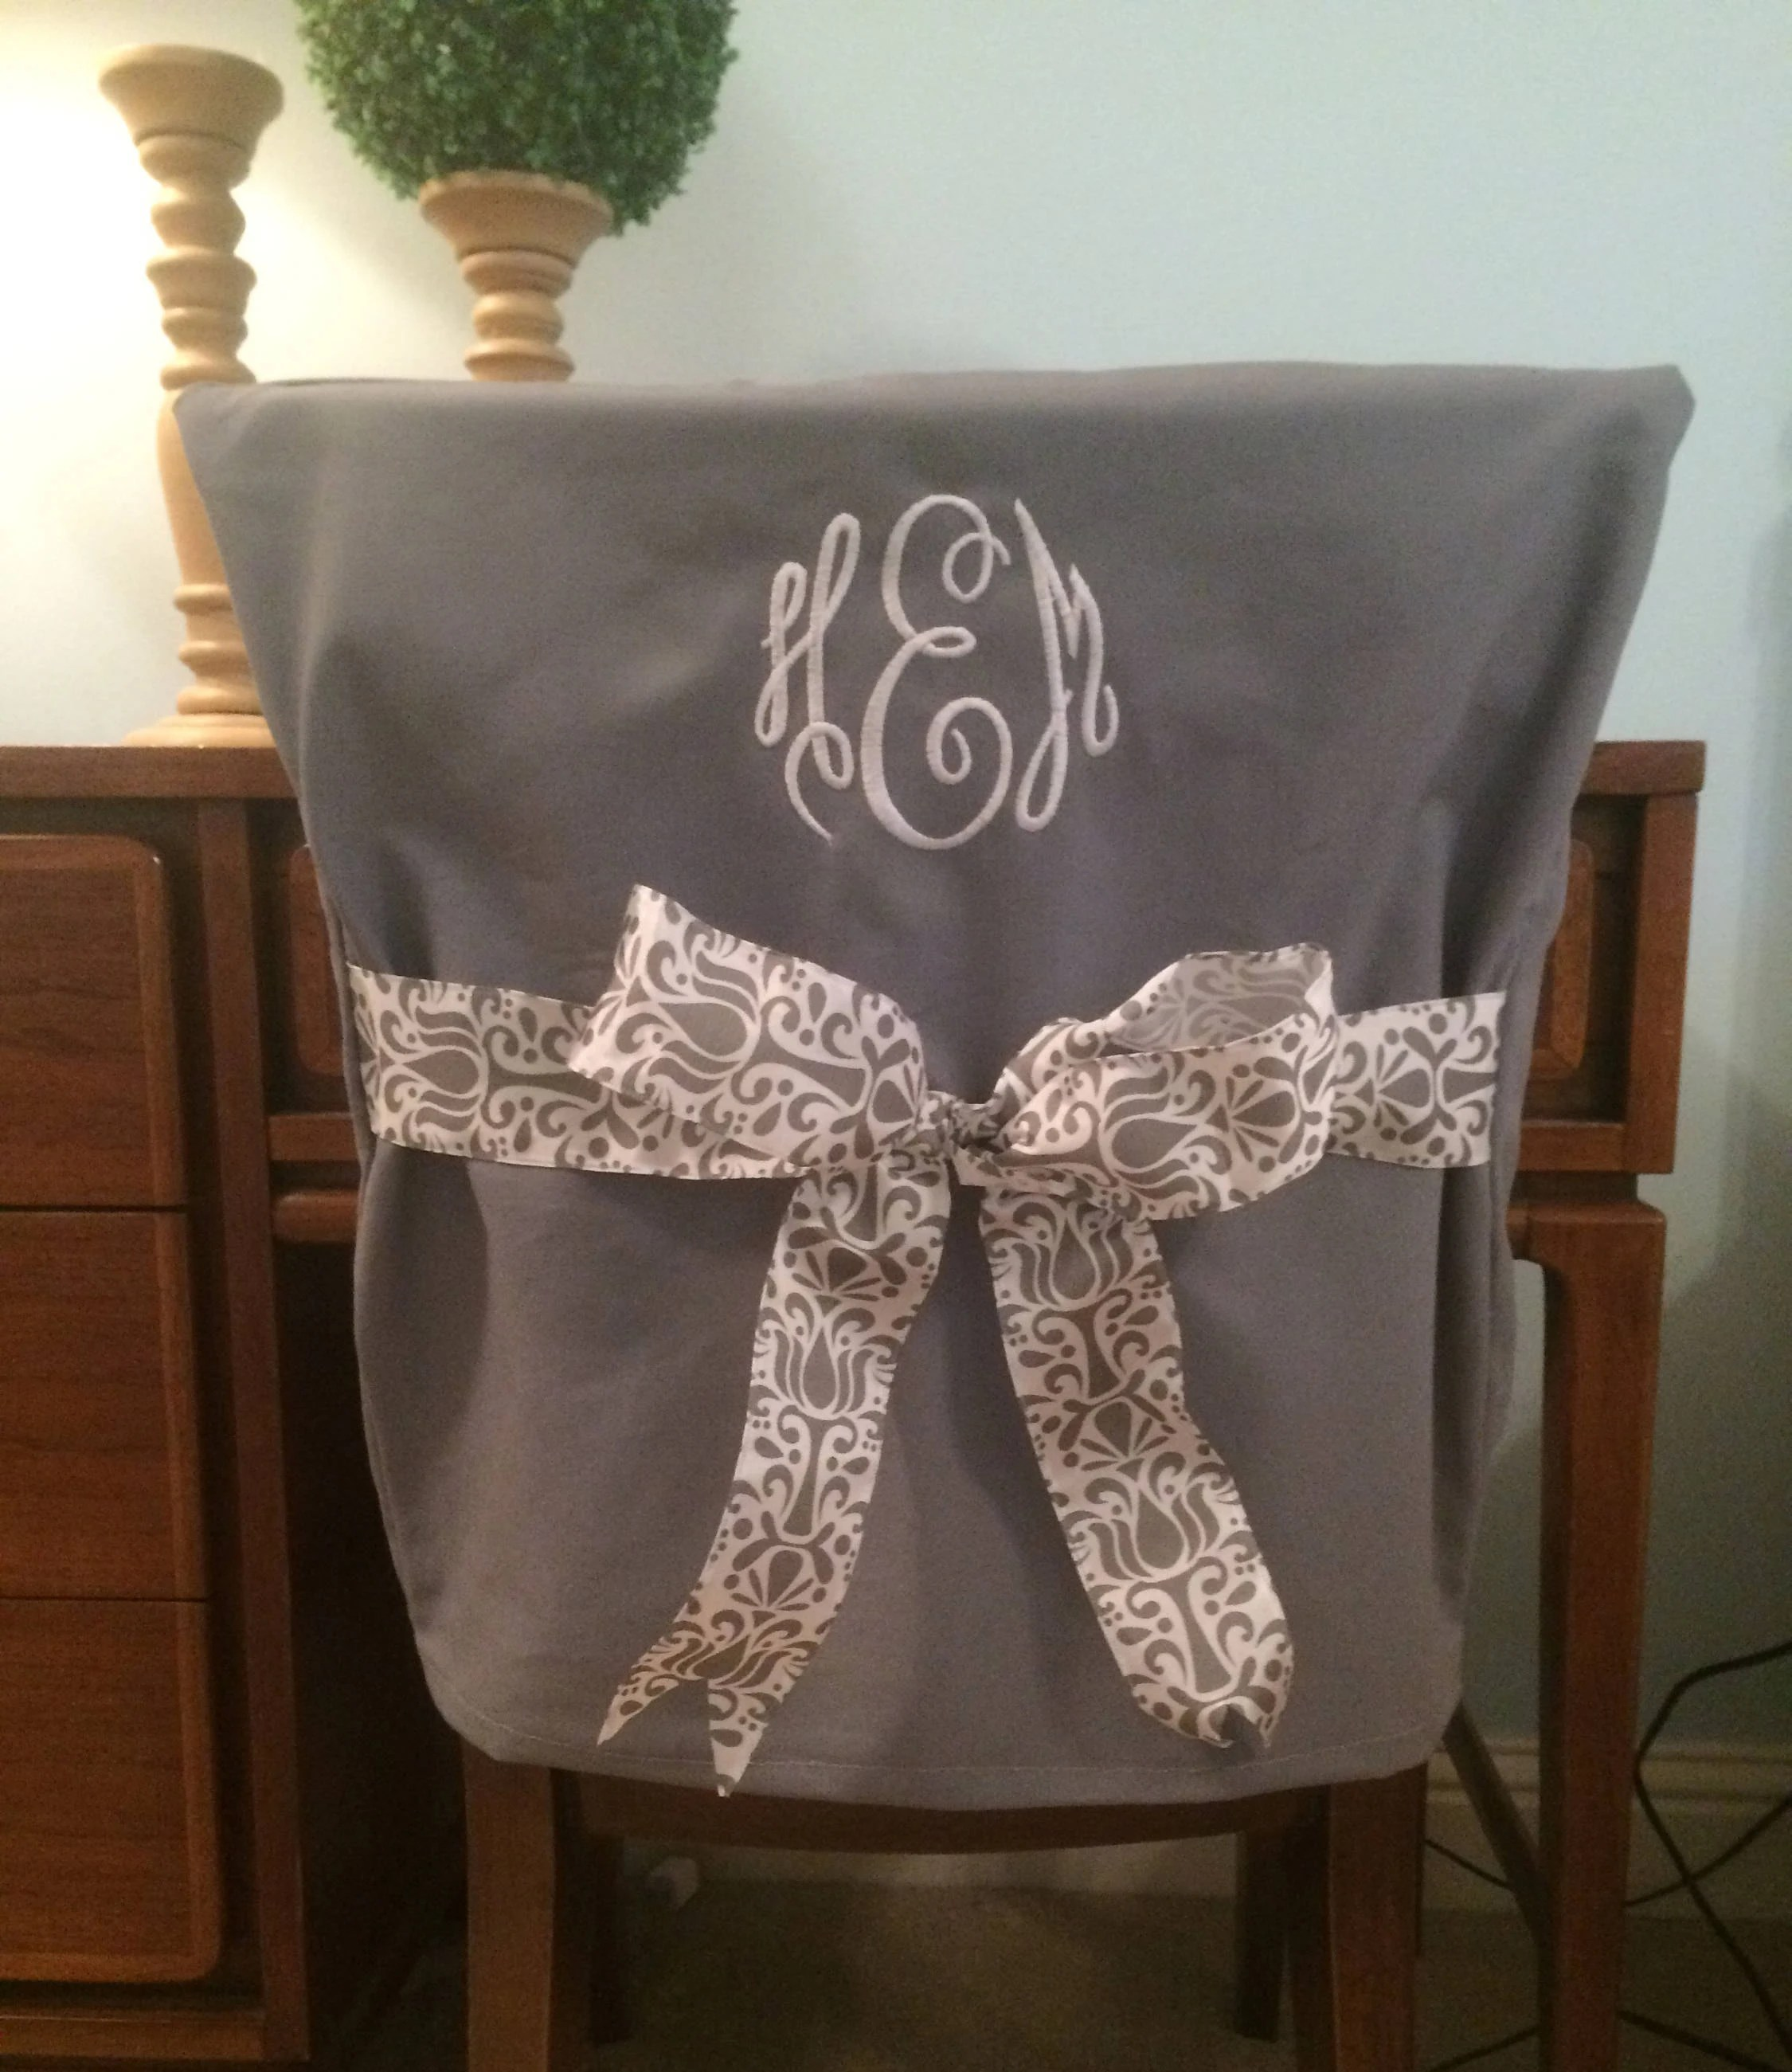 dorm chair covers etsy best big and tall desk chairs cover gray monogrammed back personalized office dining one size fits most